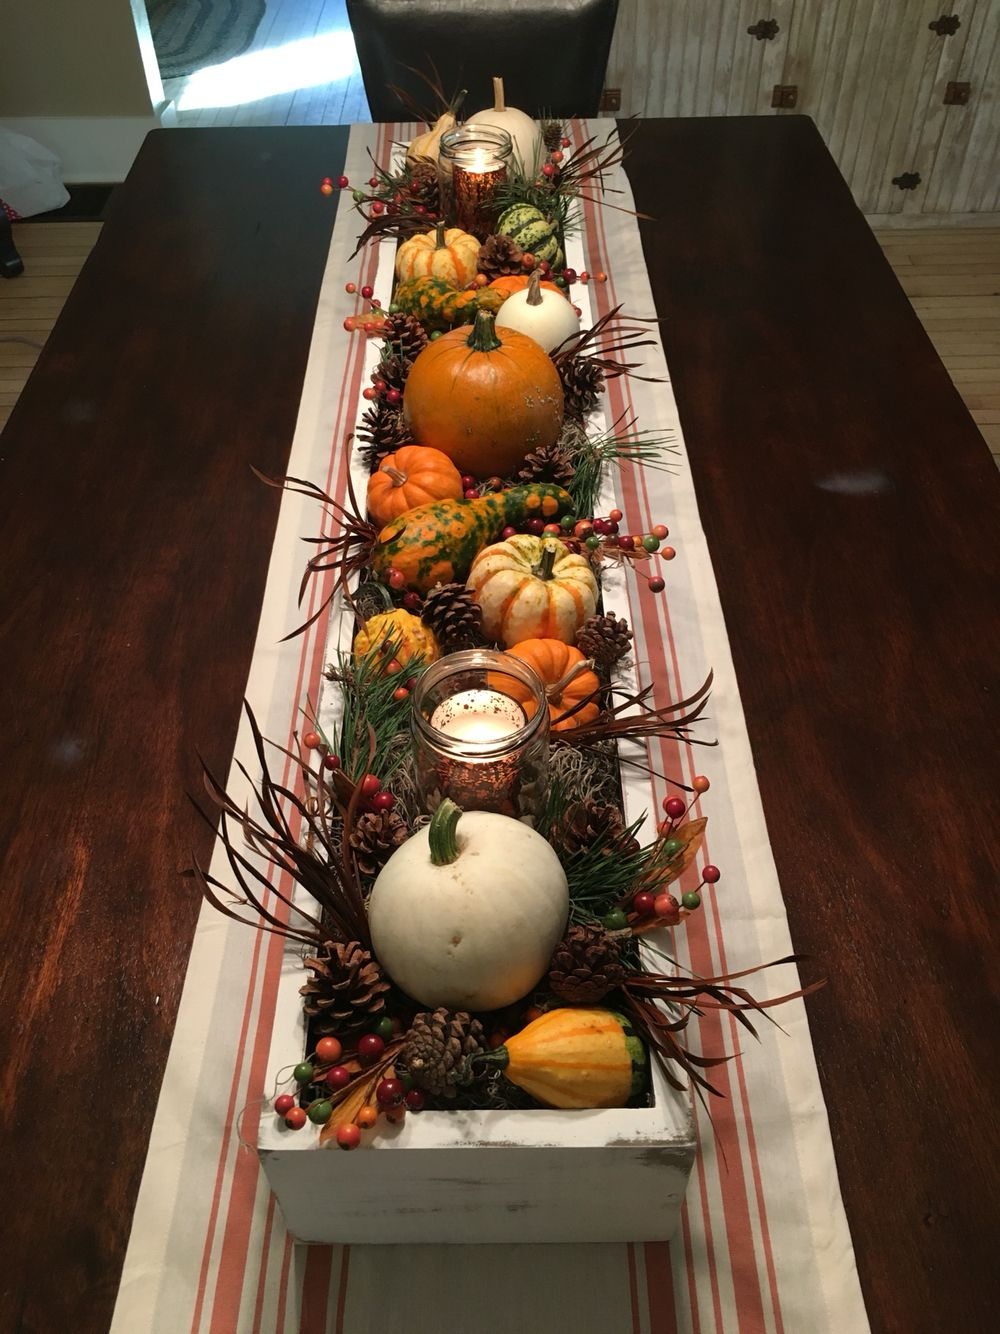 Harvest table. My version of a Pinterest inspiration